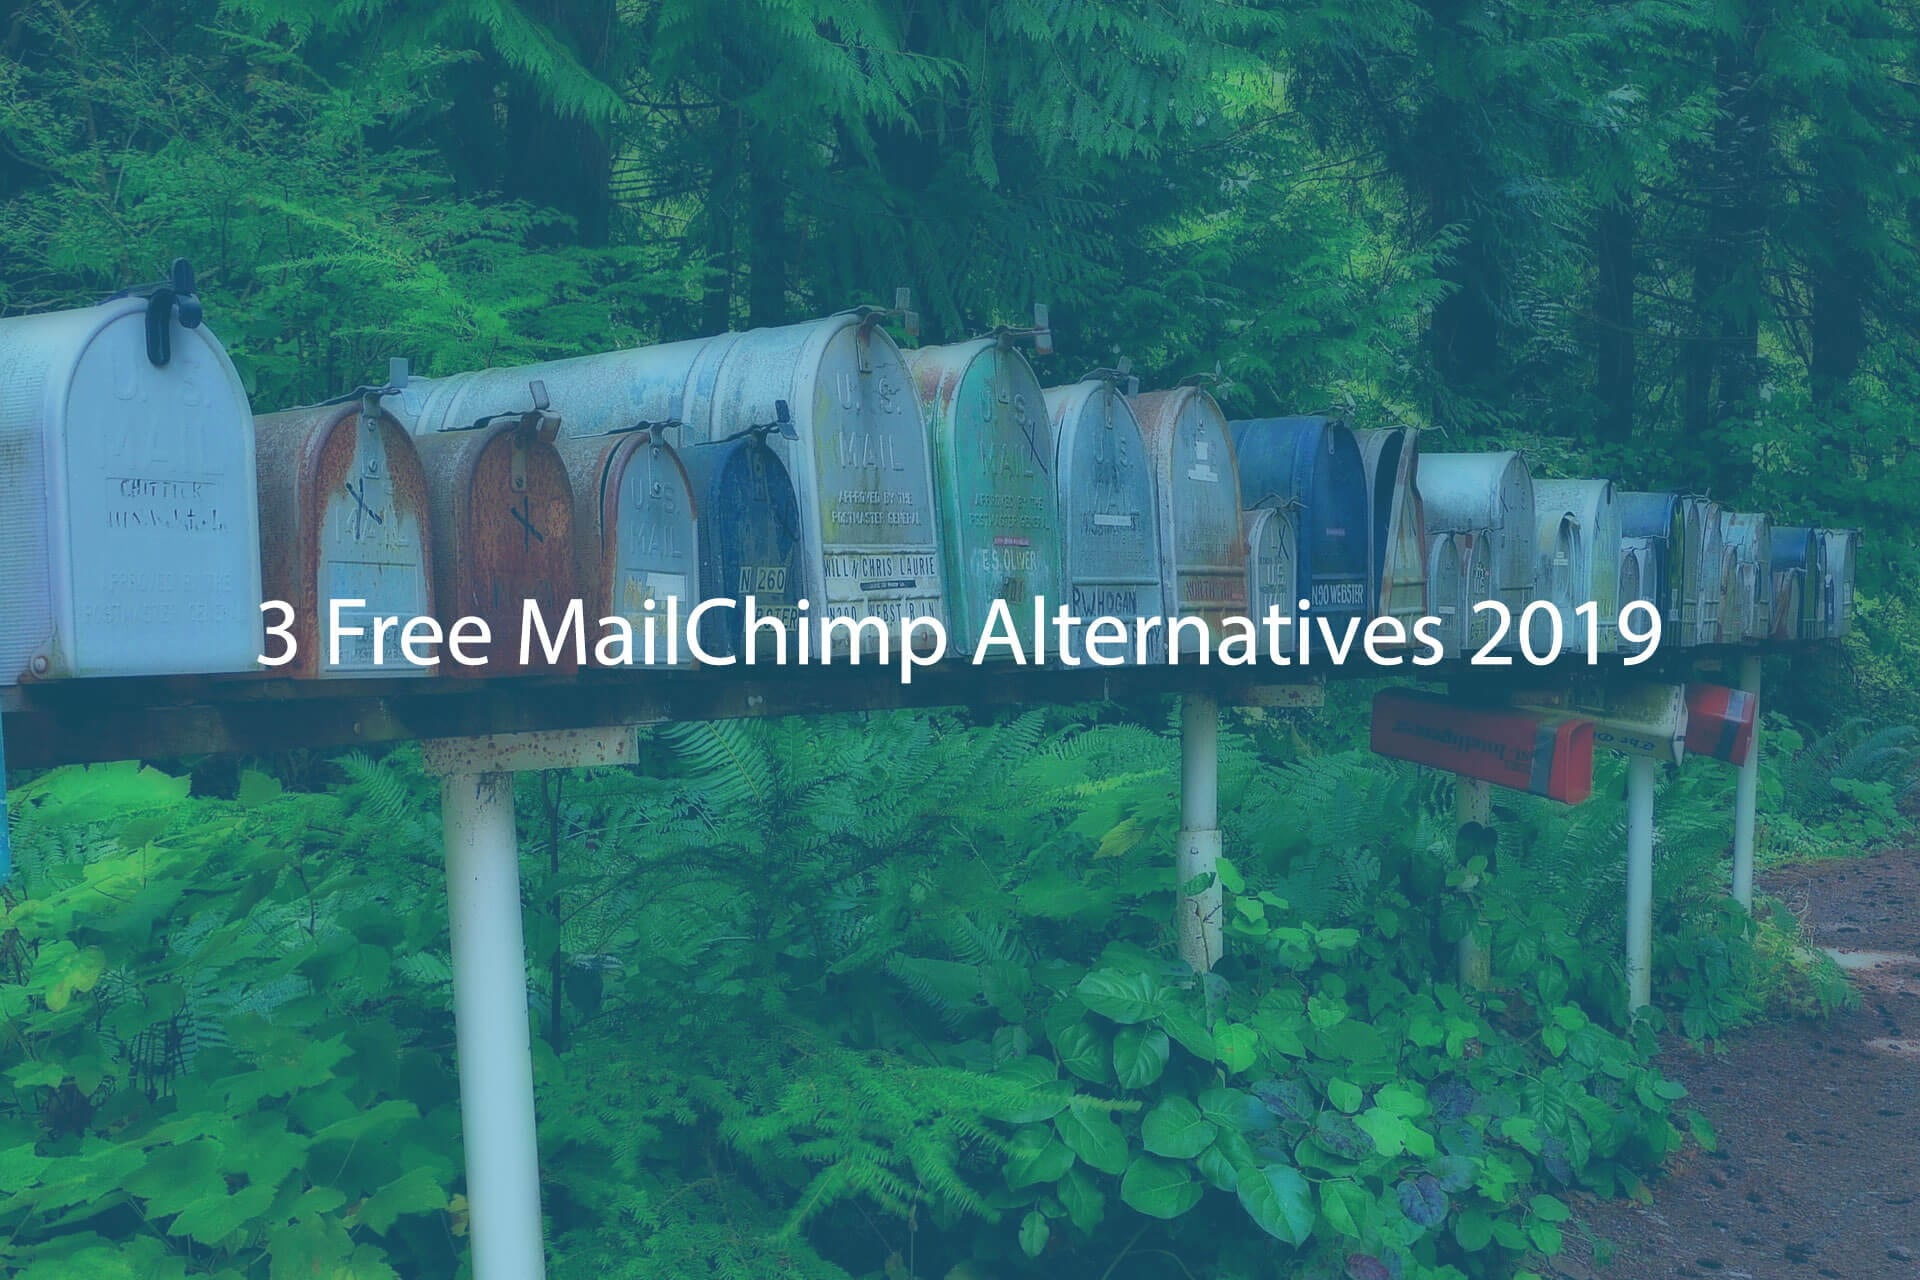 3-Free-MailChimp-Alternatives